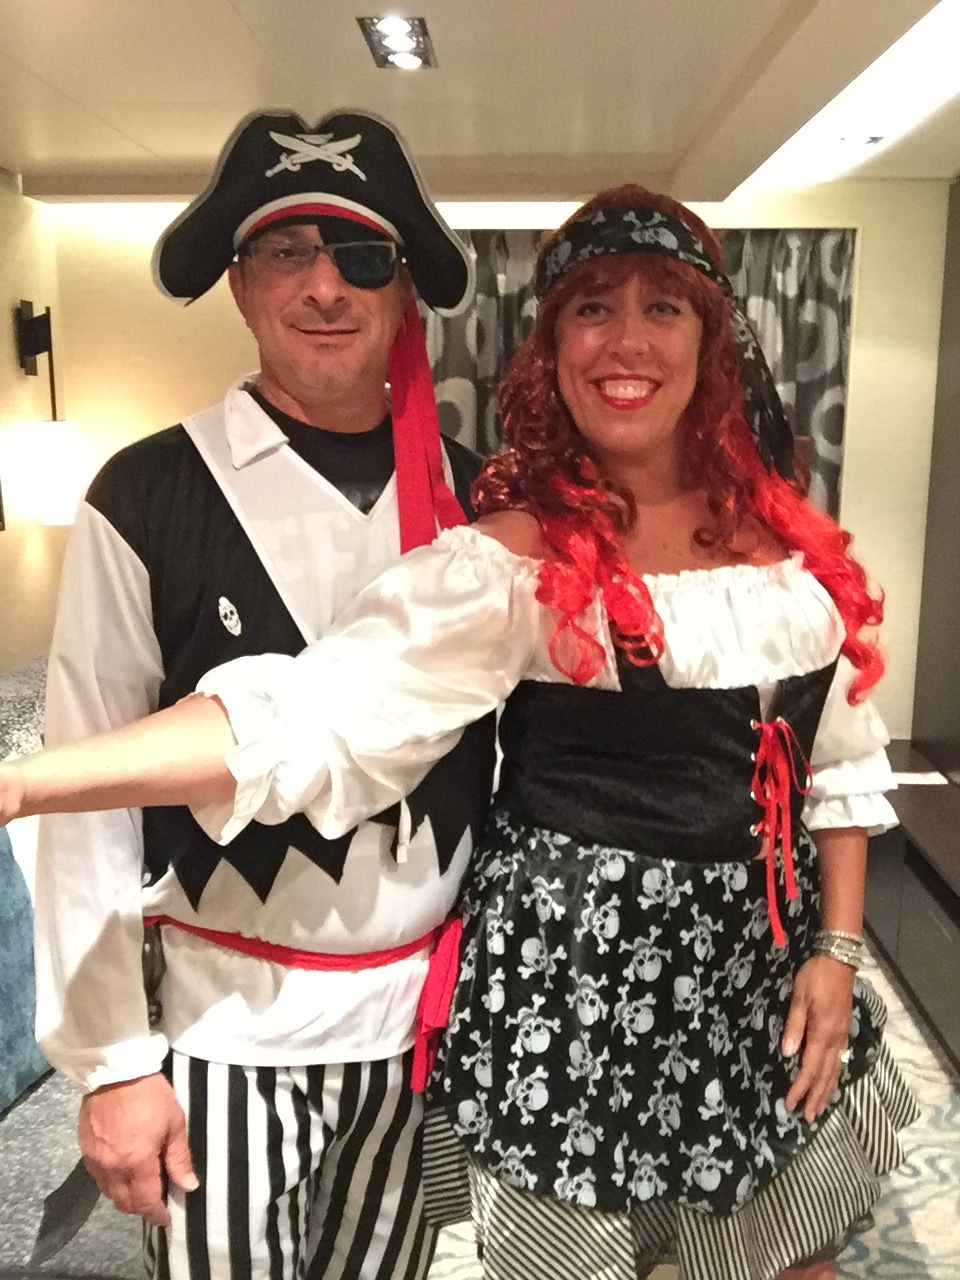 It was Halloween during the cruise, so we brought our costumes, and so did